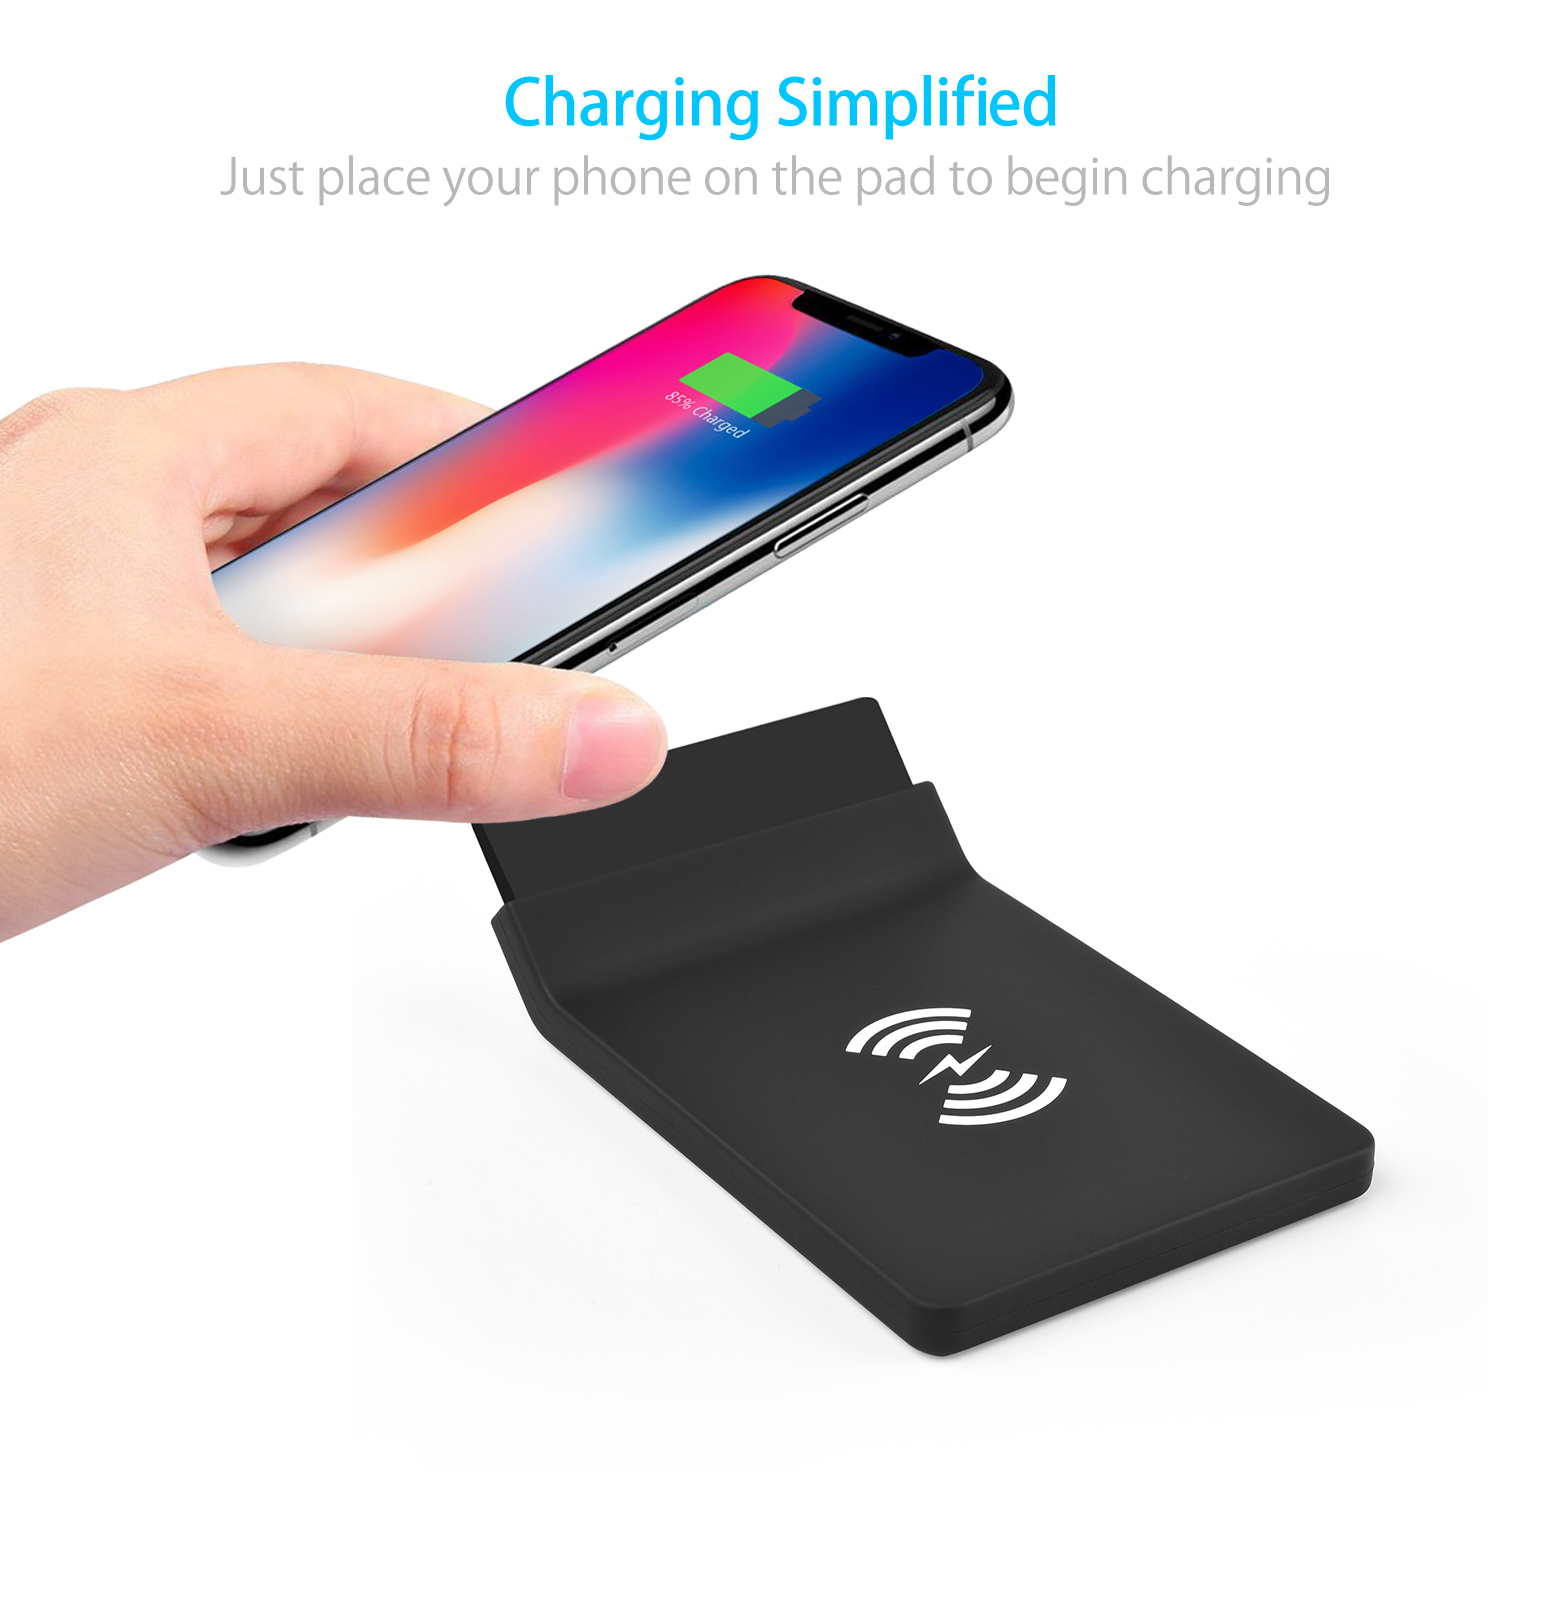 Promotion Glowing Logo Led light up 5W/7.5W/10W Mobile Phone Square Qi Standard Wireless Charger